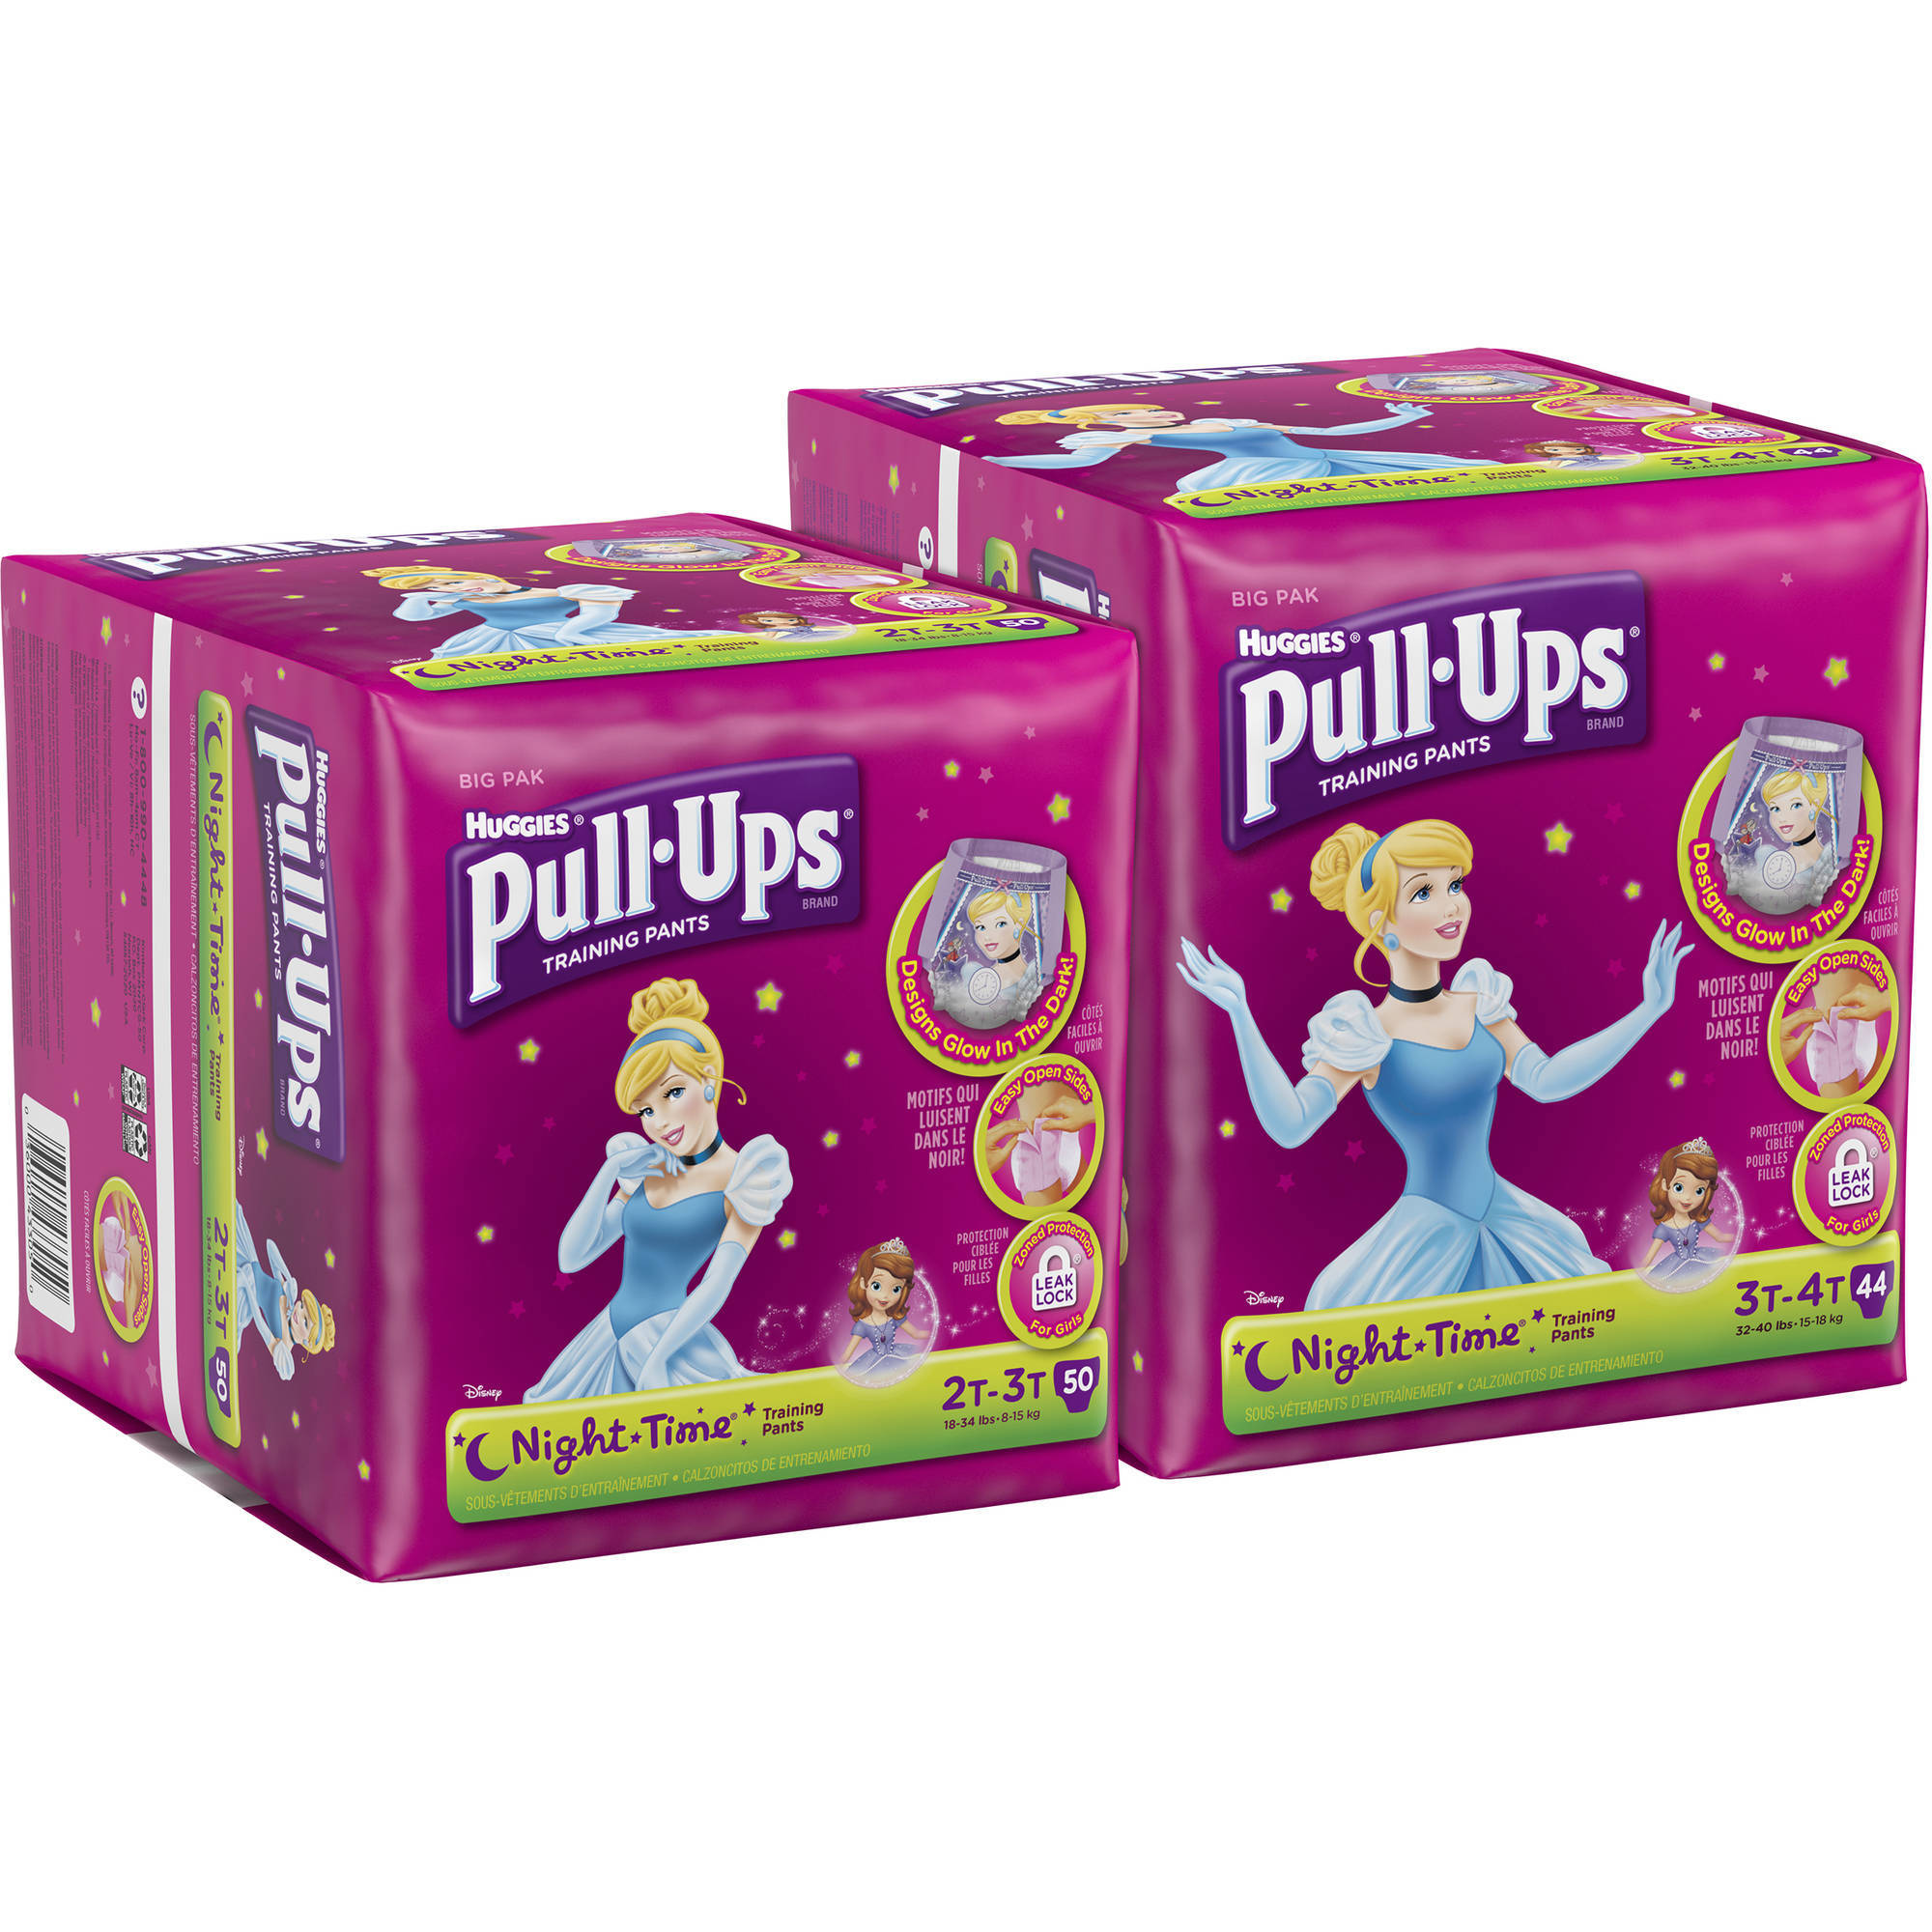 Pull-Ups Night Time Training Pants for Girls, Big Pak, (Choose Your Size)